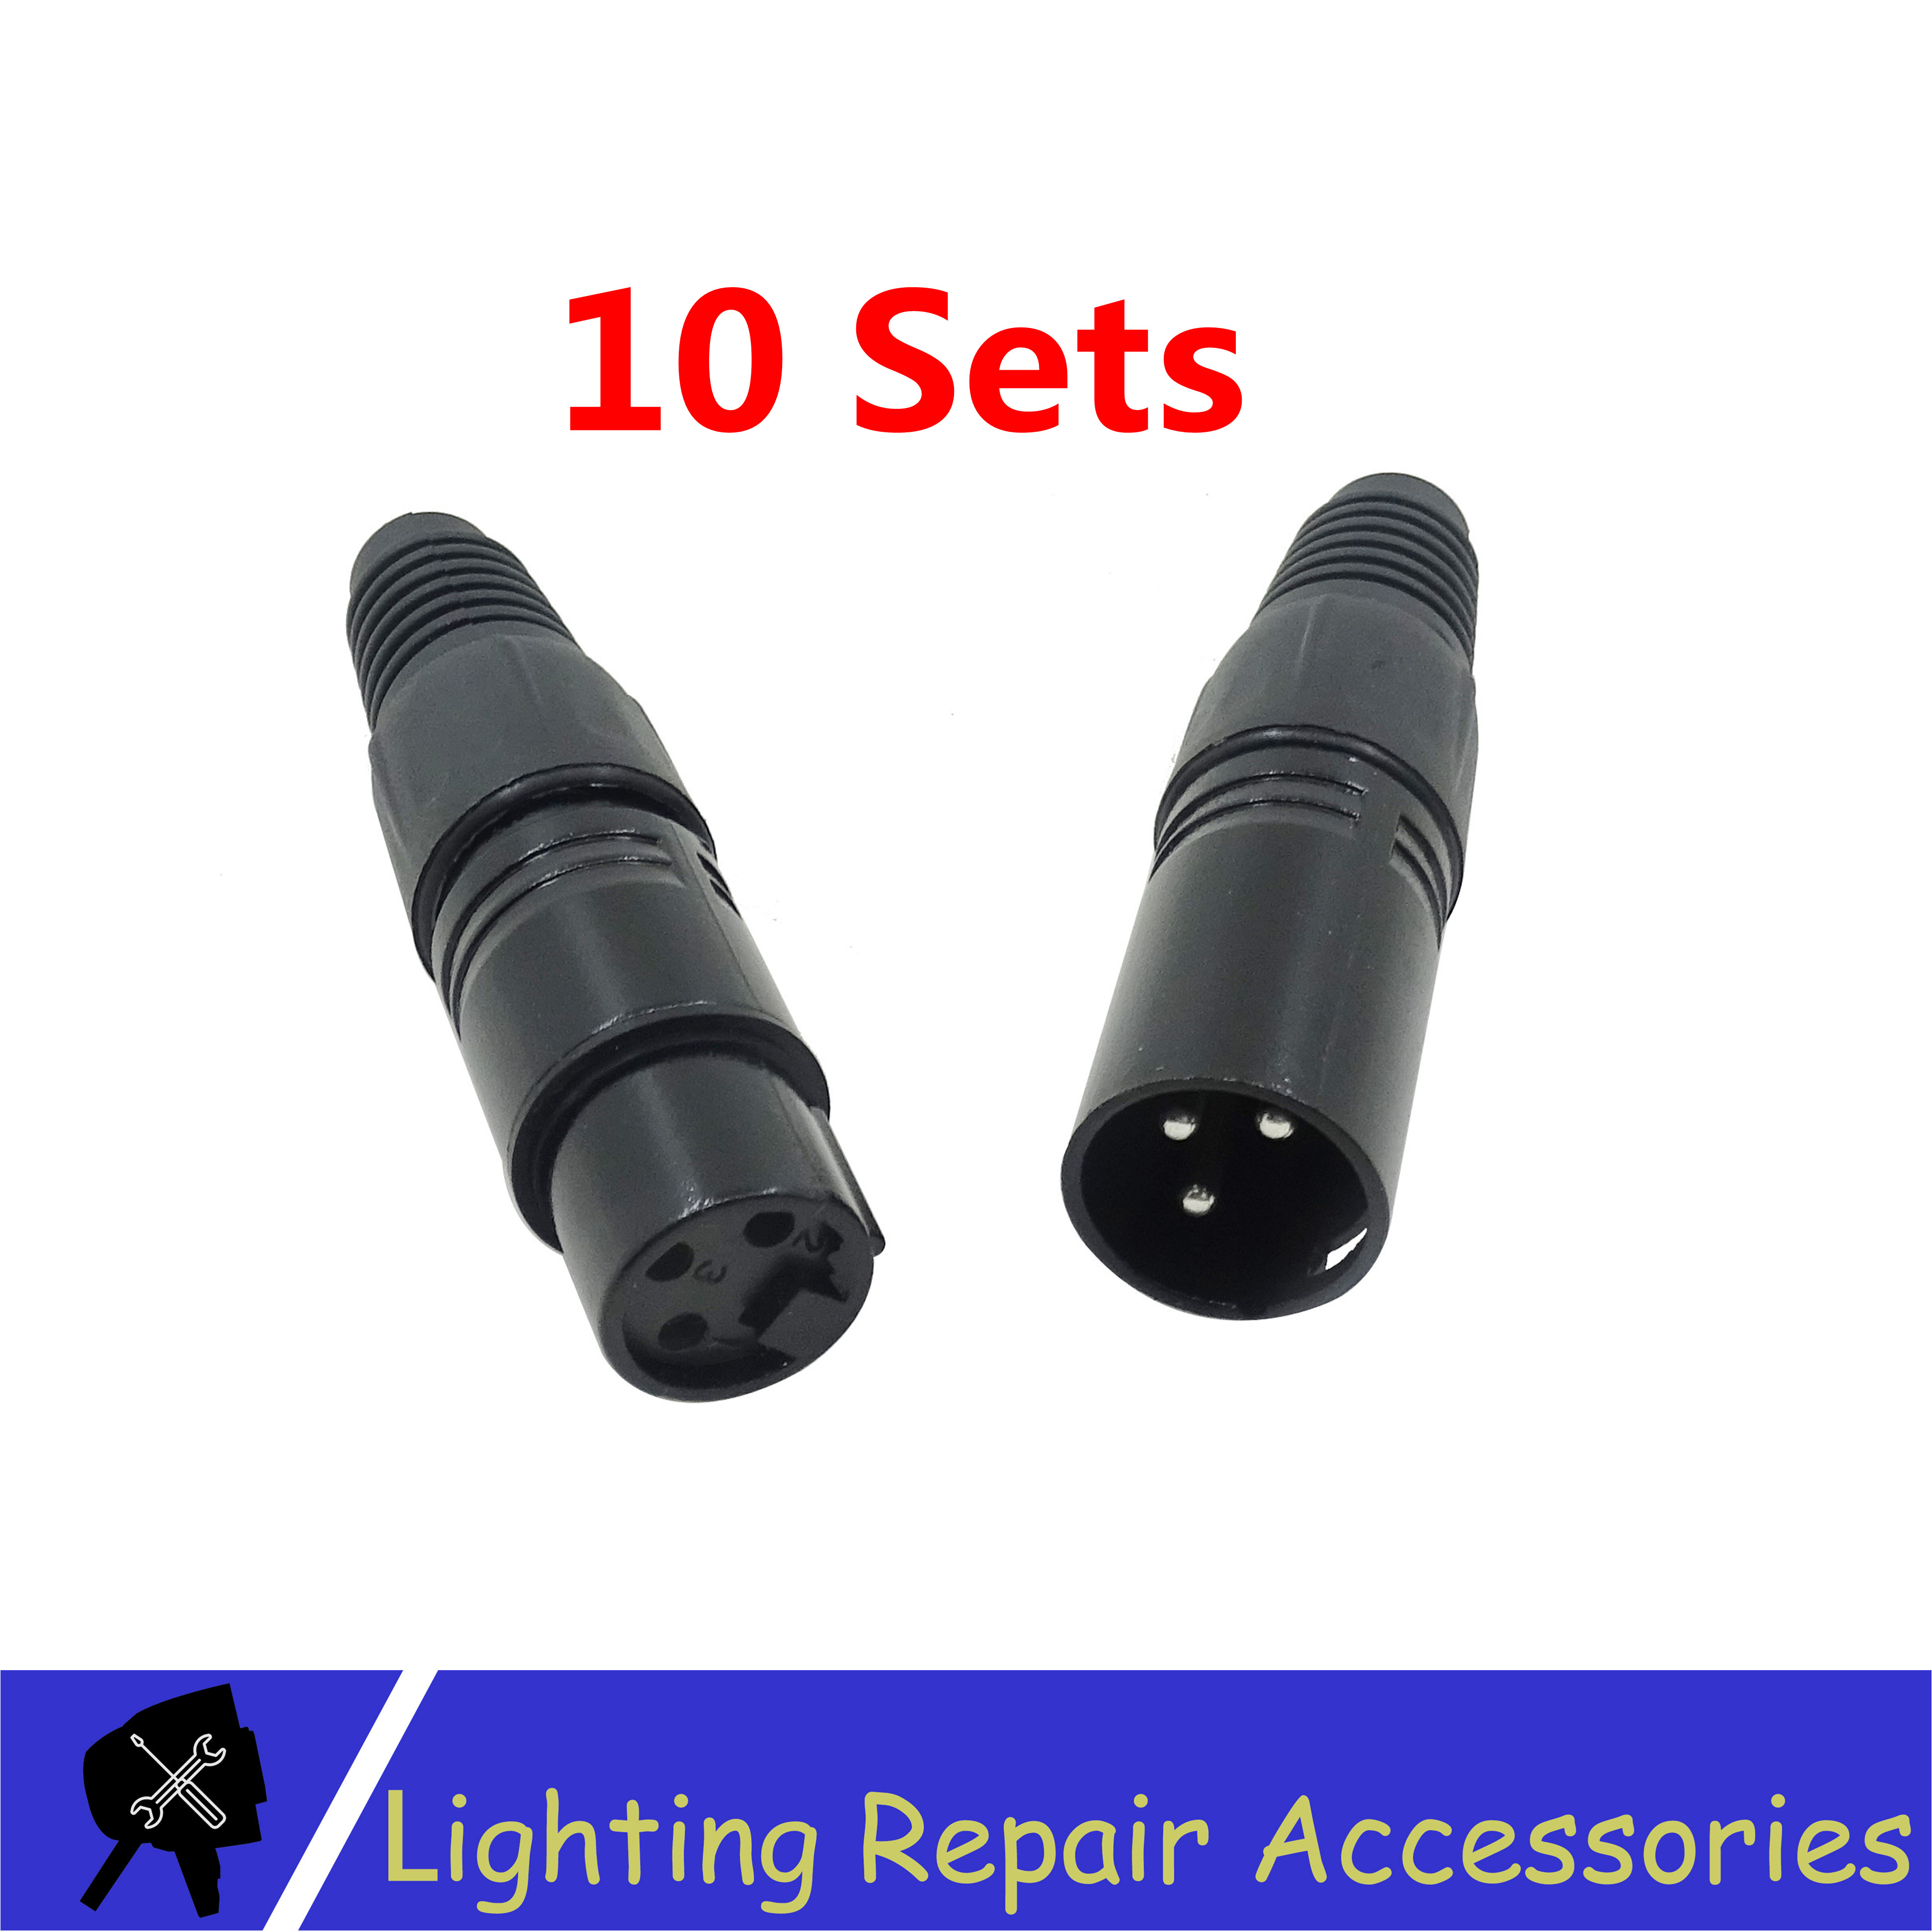 10Sets 3-PIN XLR Metal Connector  For DMX Cable Microphone Cable Audio Cable Connector Stage Light Accessories